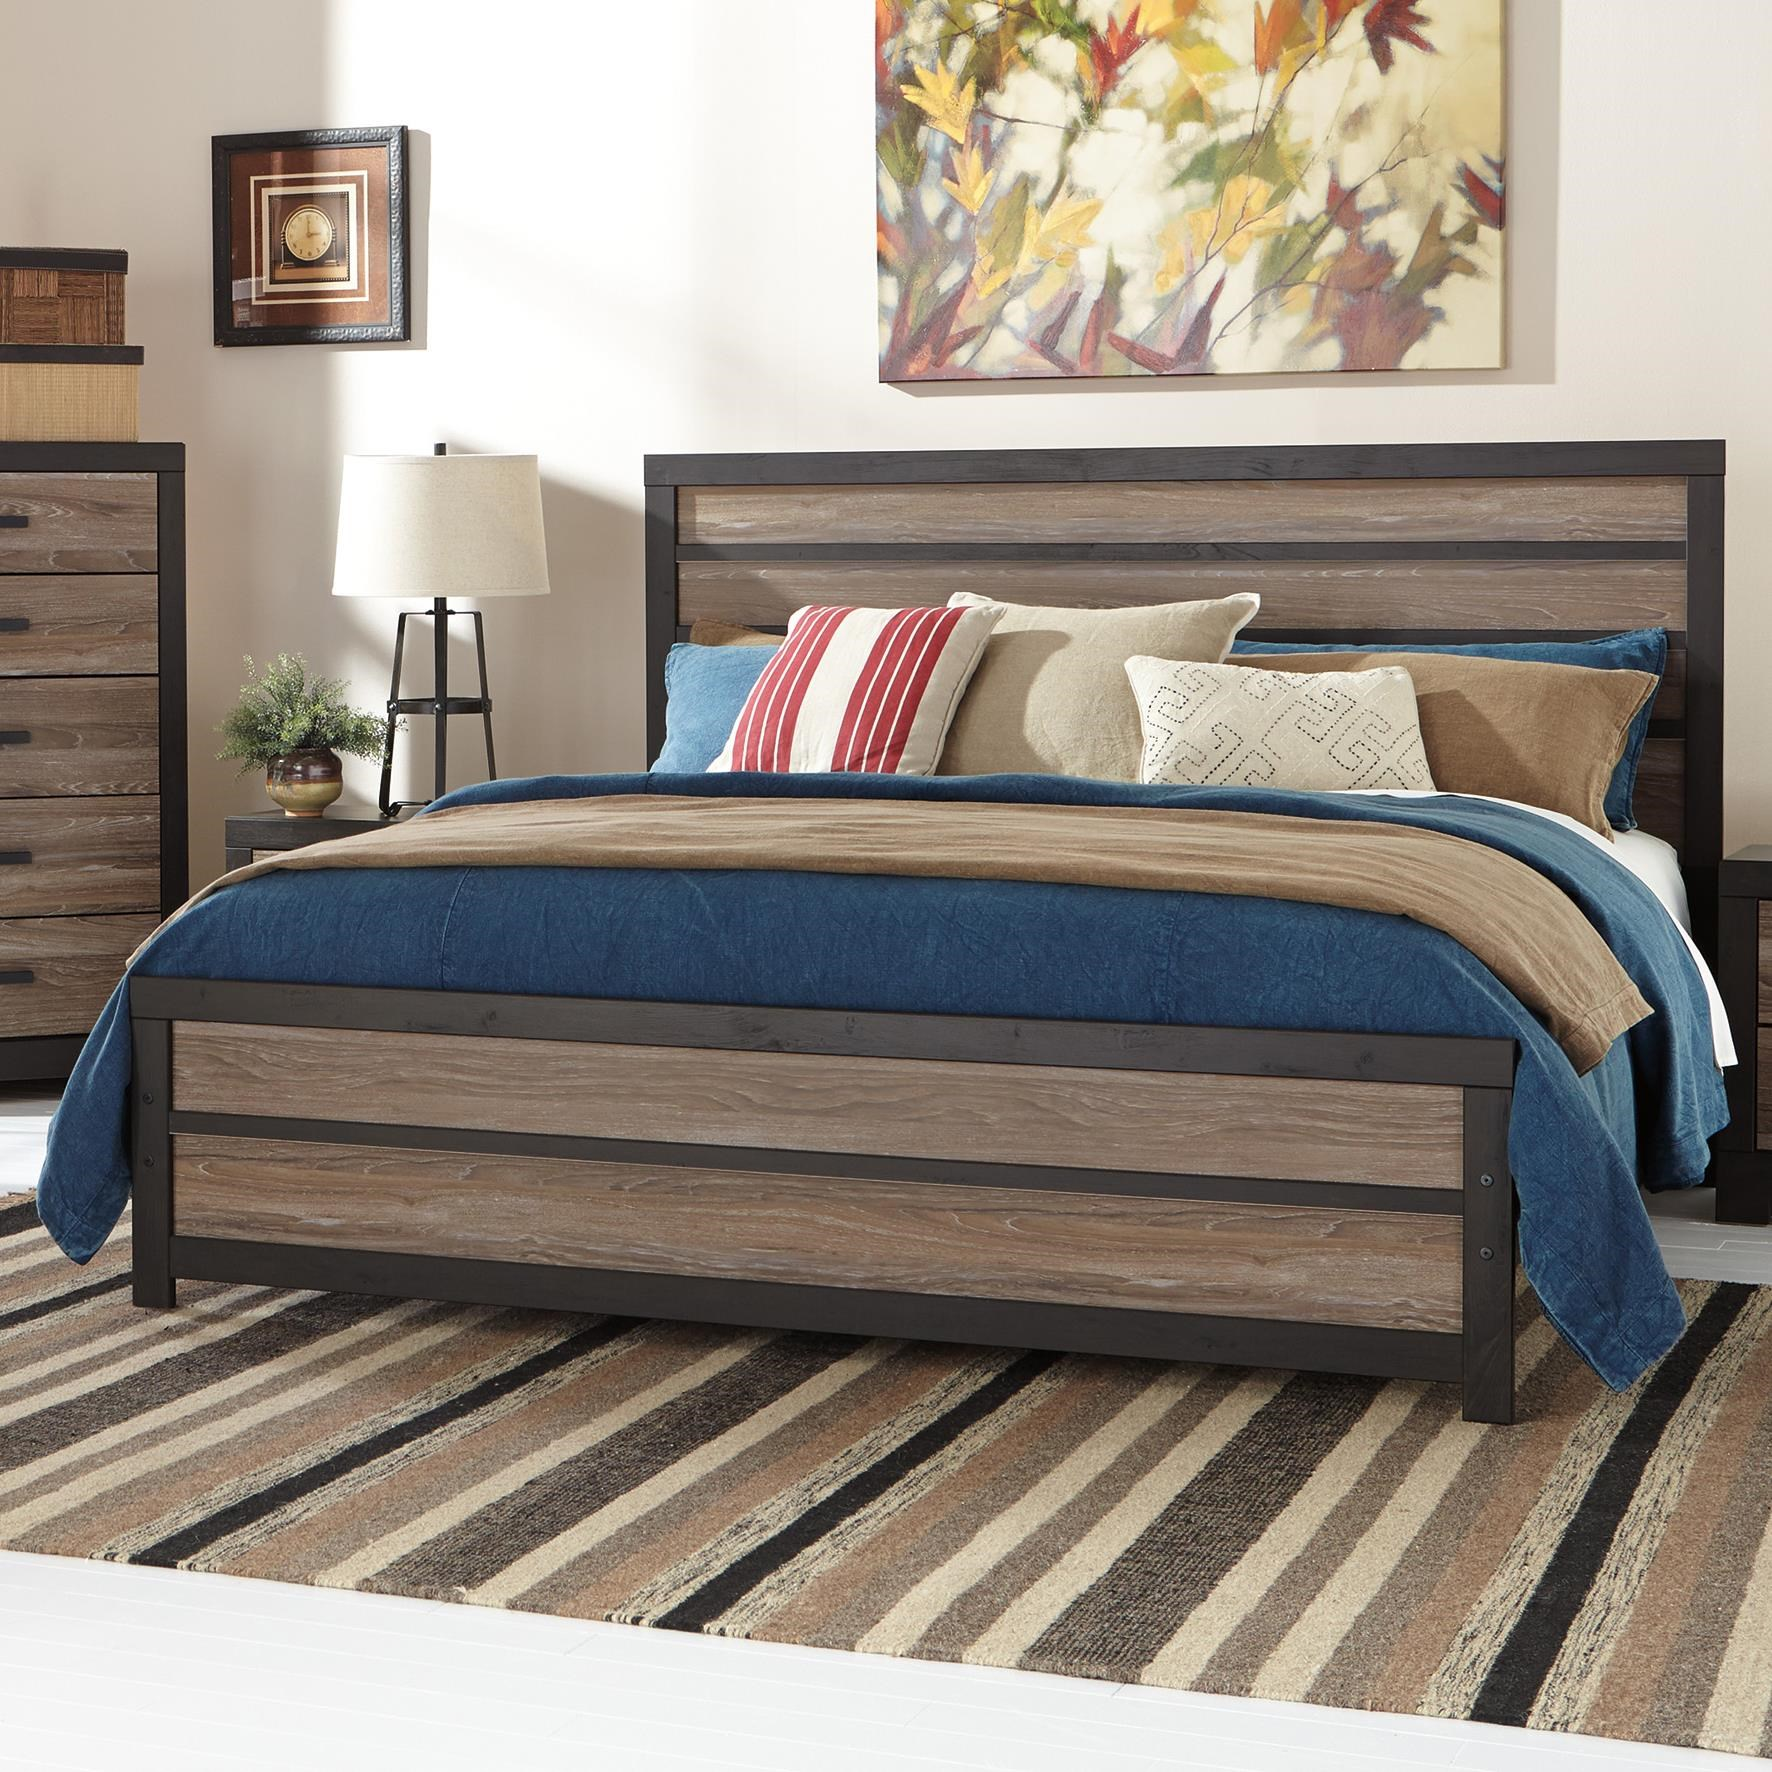 Signature Design By Ashley Harlinton Rustic King Panel Bed